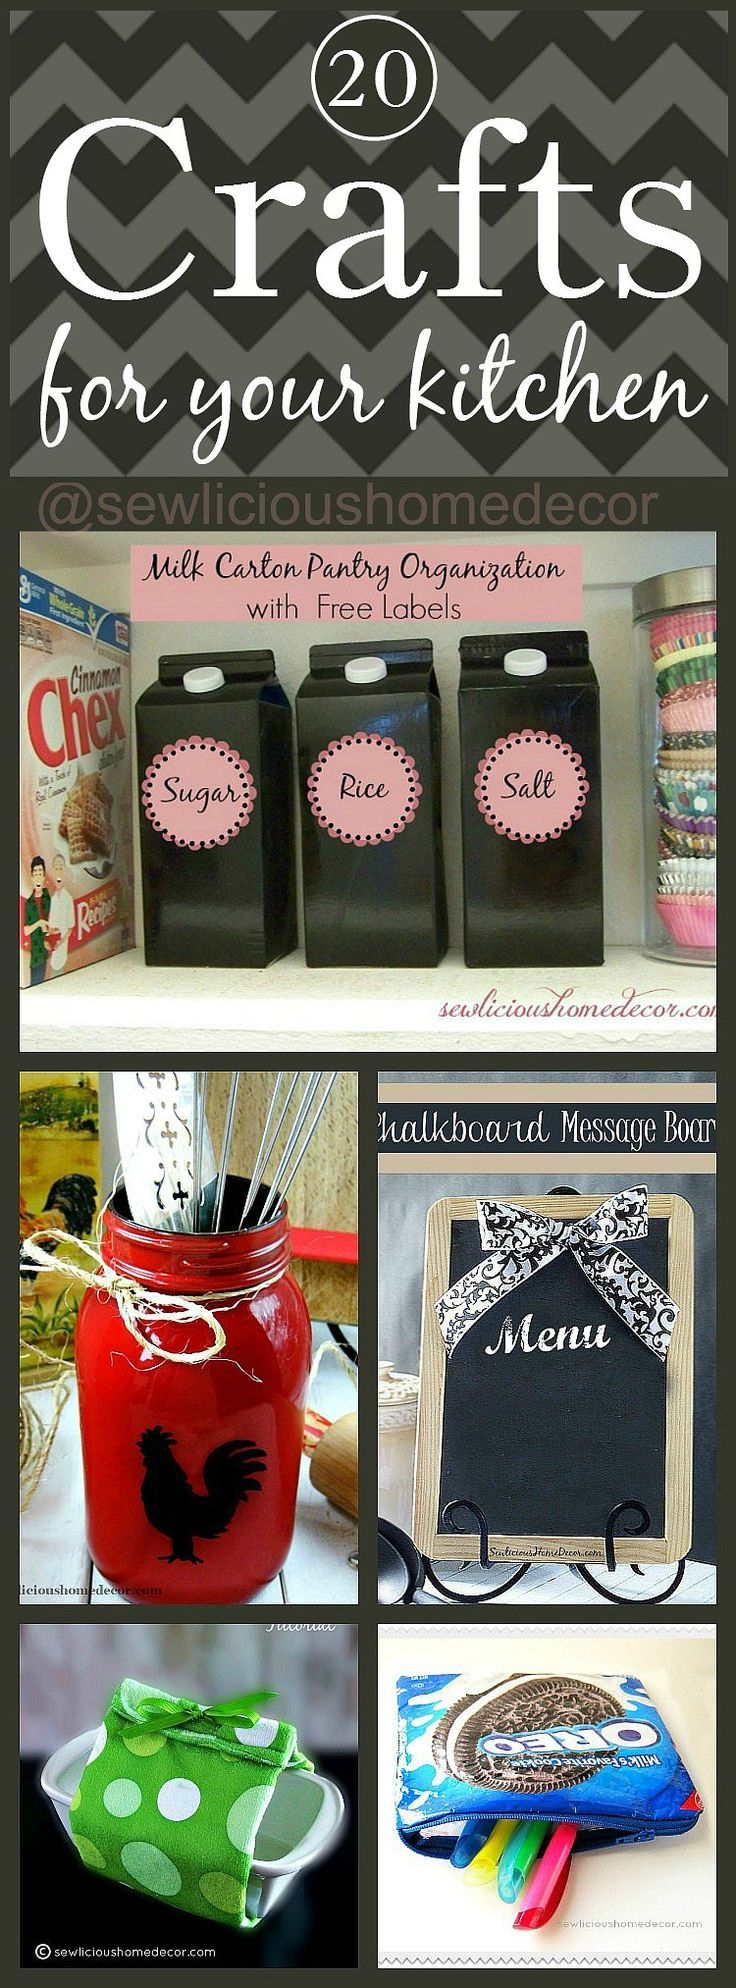 20 crafts and recycled diy projects for your kitchen for Decoraciones de hogar